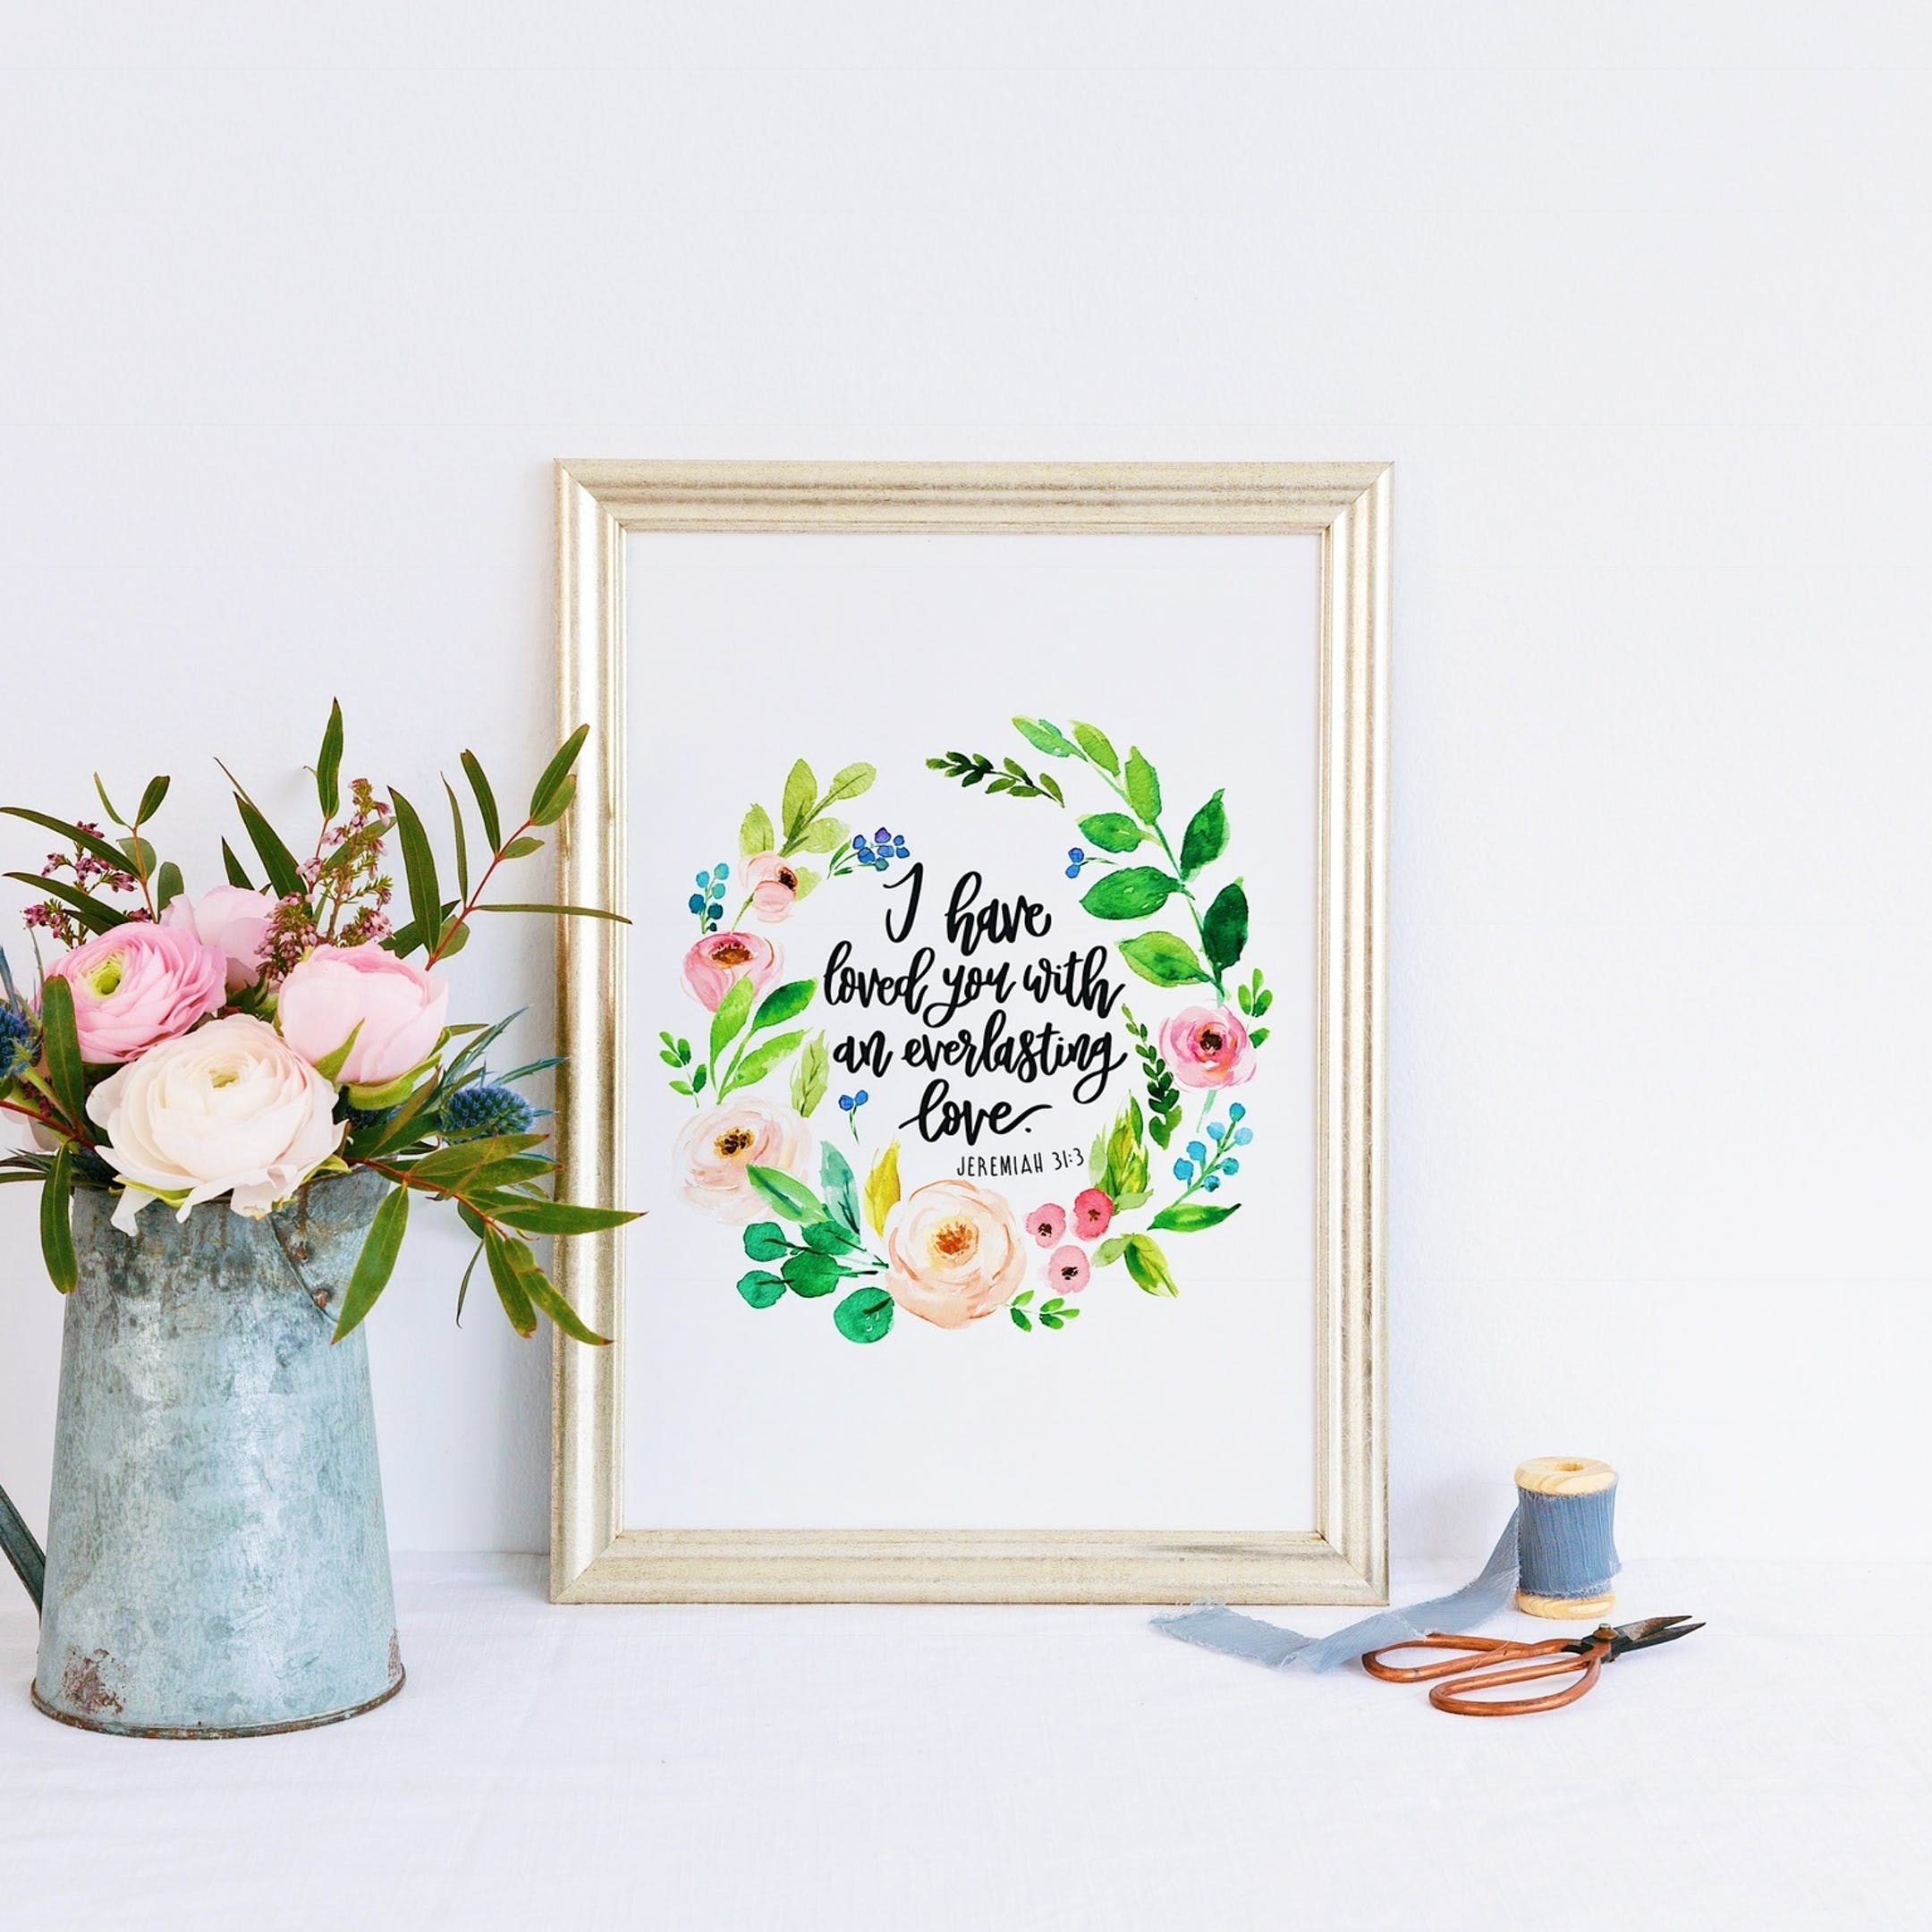 I Have Loved You - Jeremiah 31:3 Floral Print - Izzy and Pop